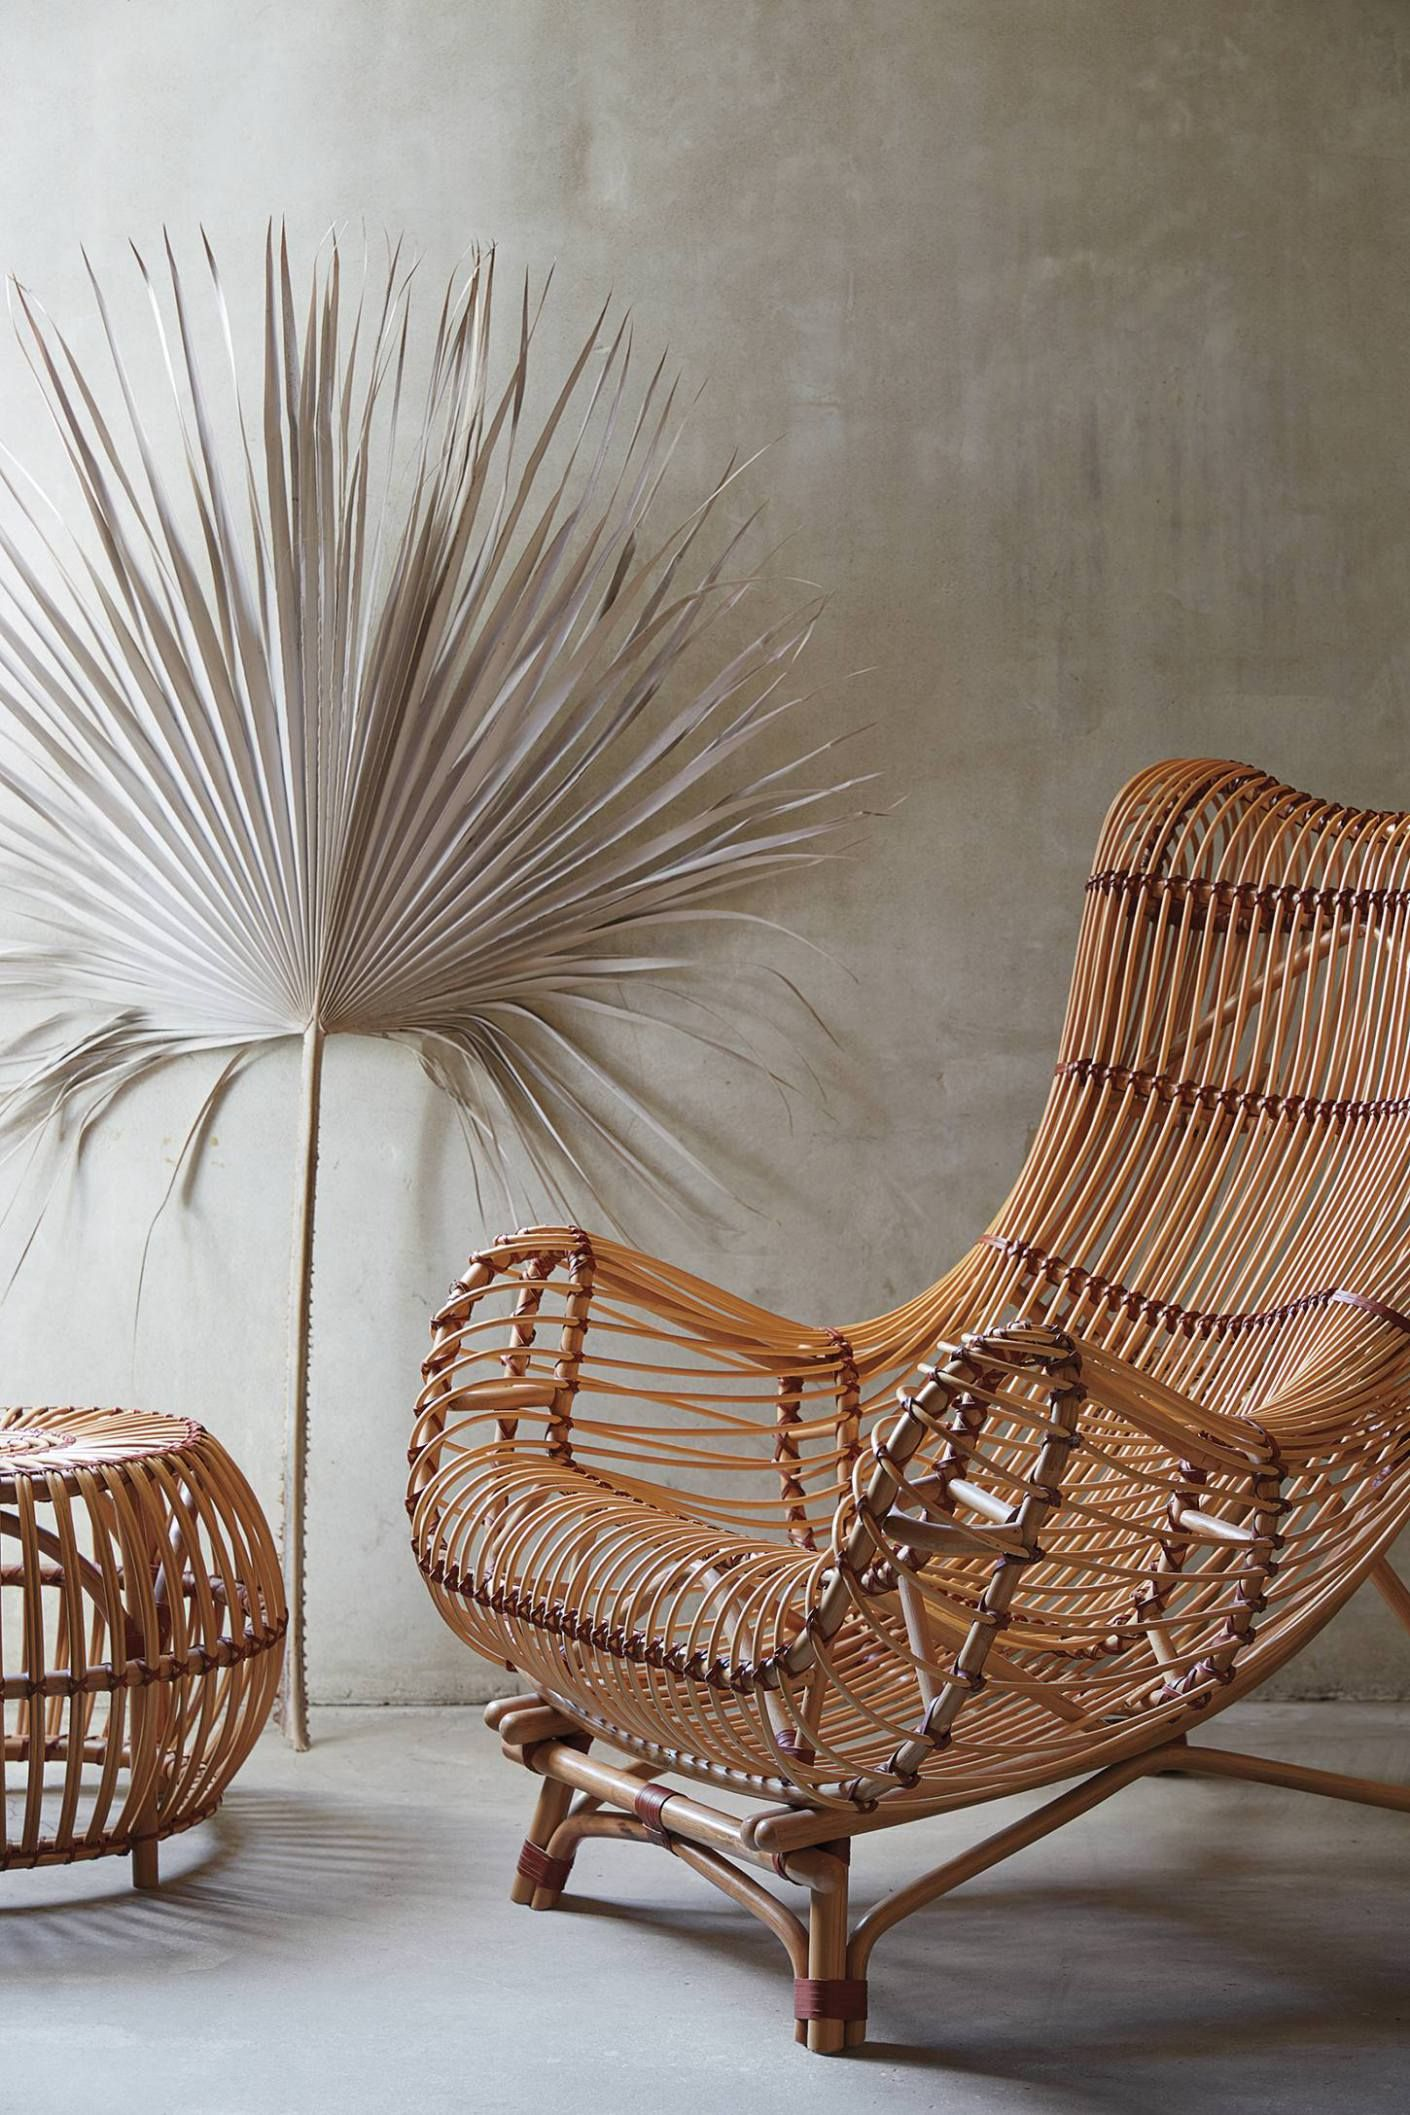 Anthropologies New Arrivals Spring Inspired Decor